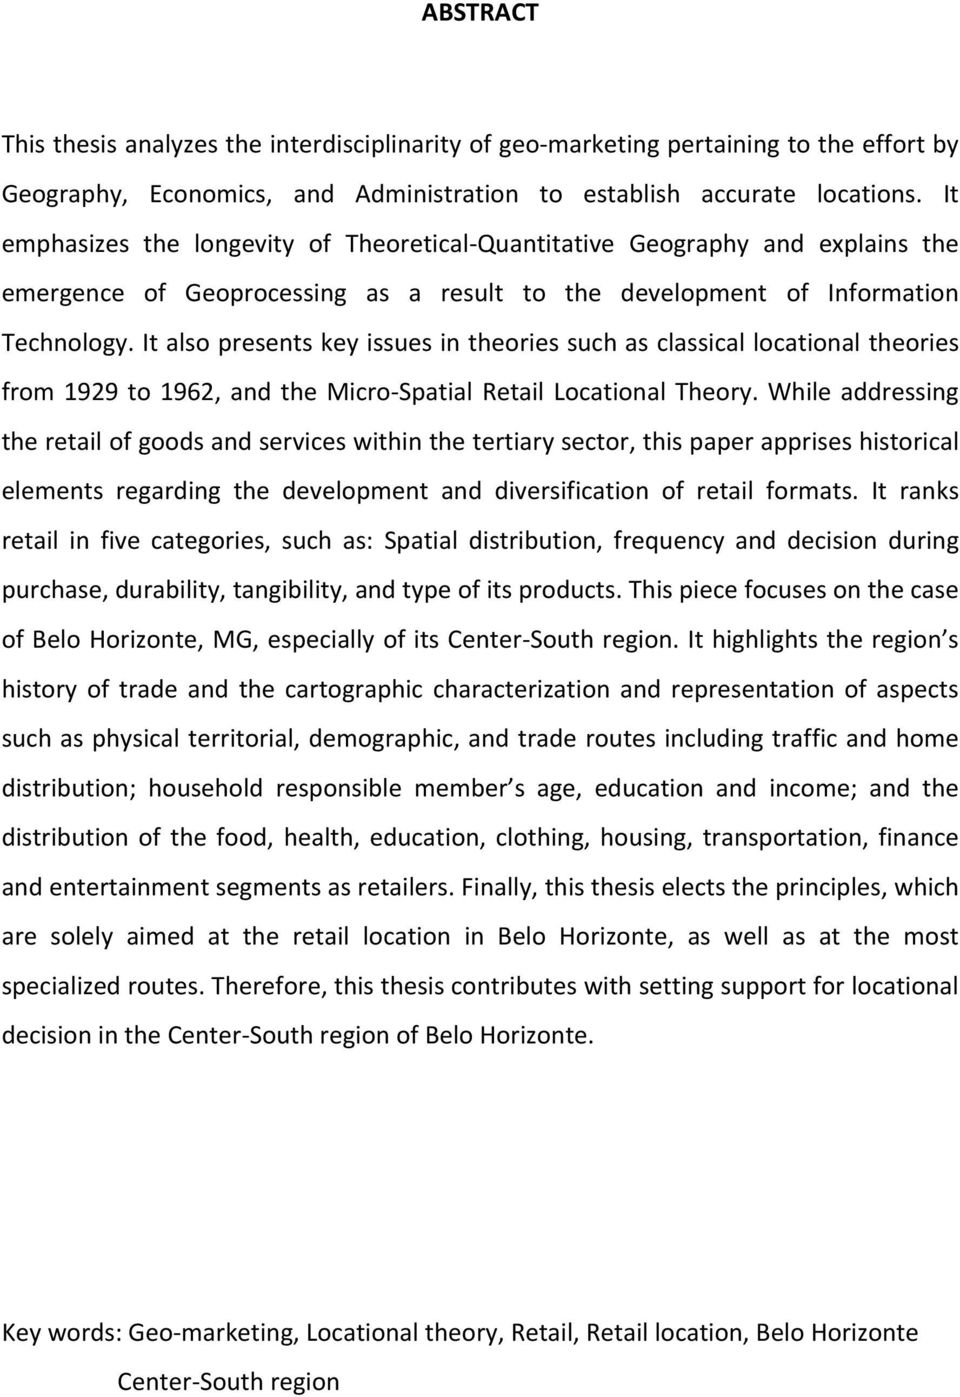 It also presents key issues in theories such as classical locational theories from 1929 to 1962, and the Micro Spatial Retail Locational Theory.